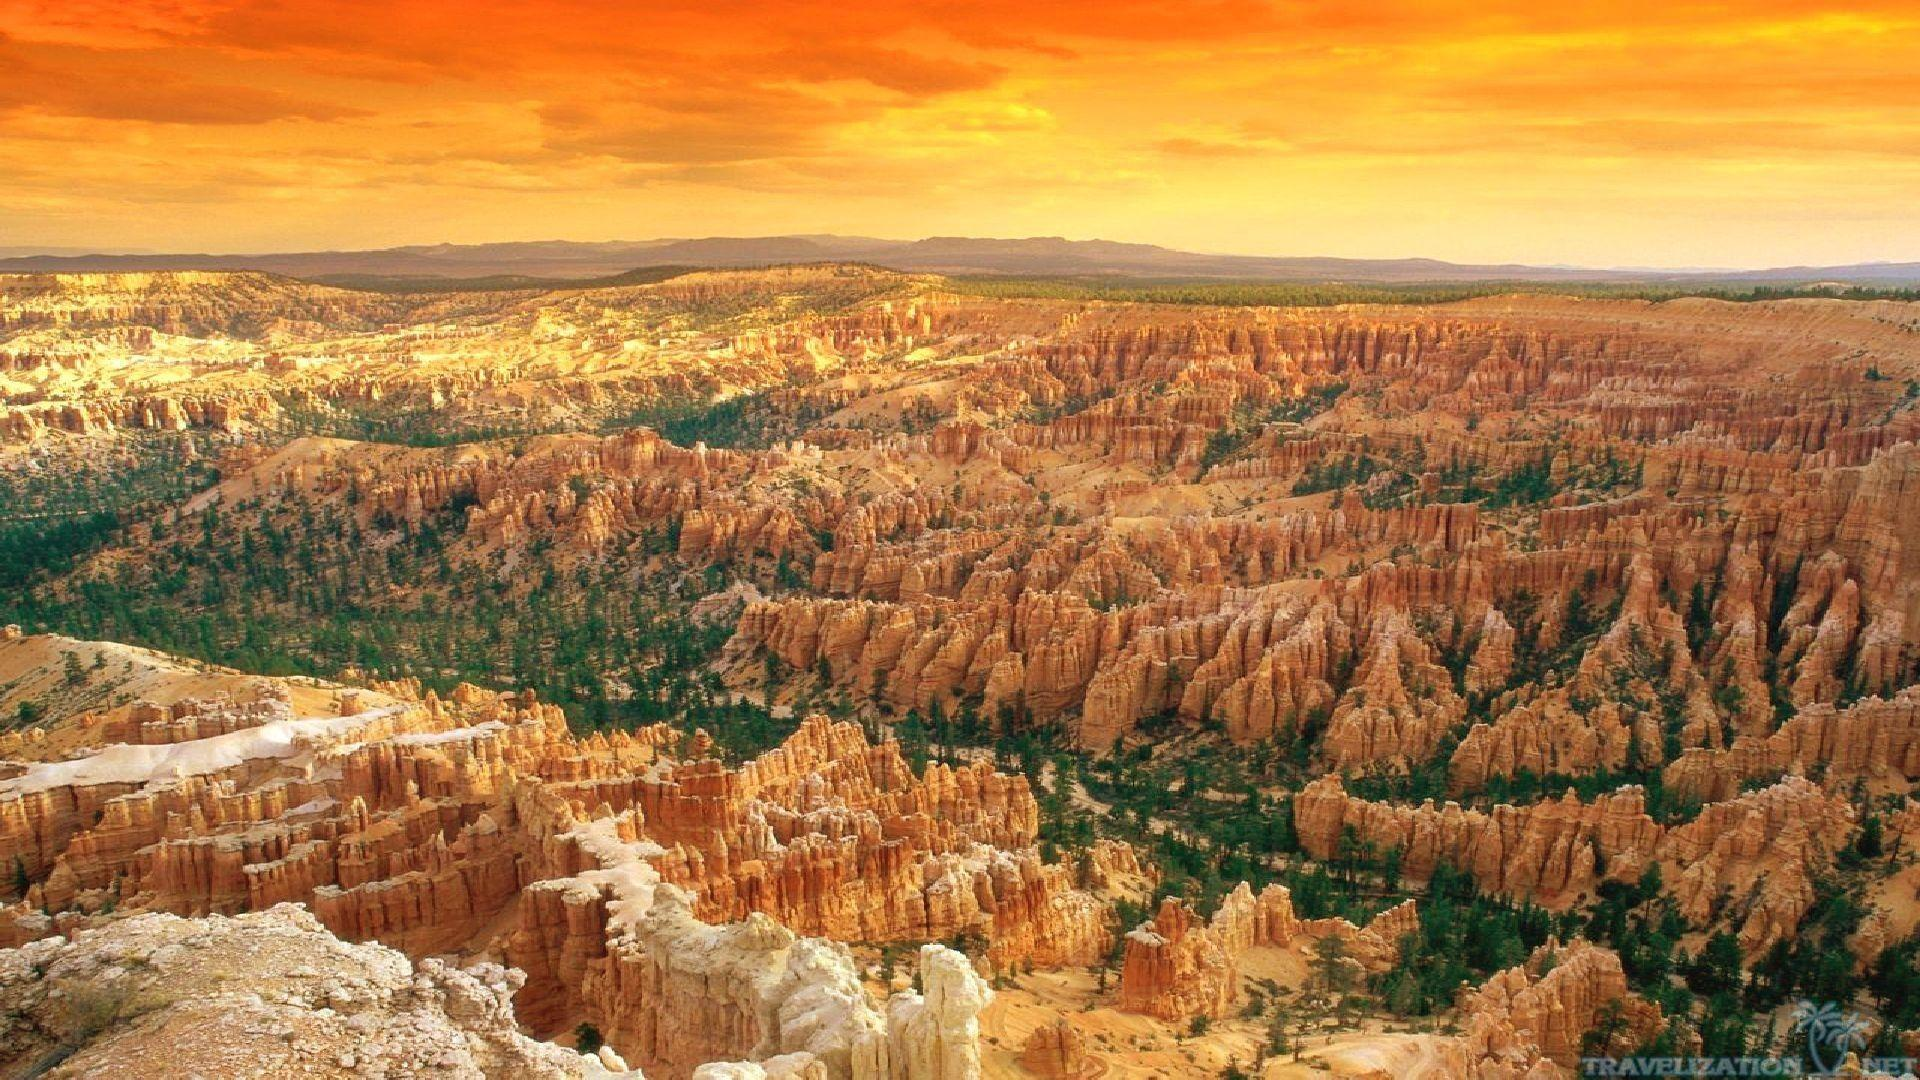 Panic At The Disco Wallpaper Hd Bryce Canyon National Park Wallpapers Wallpaper Cave